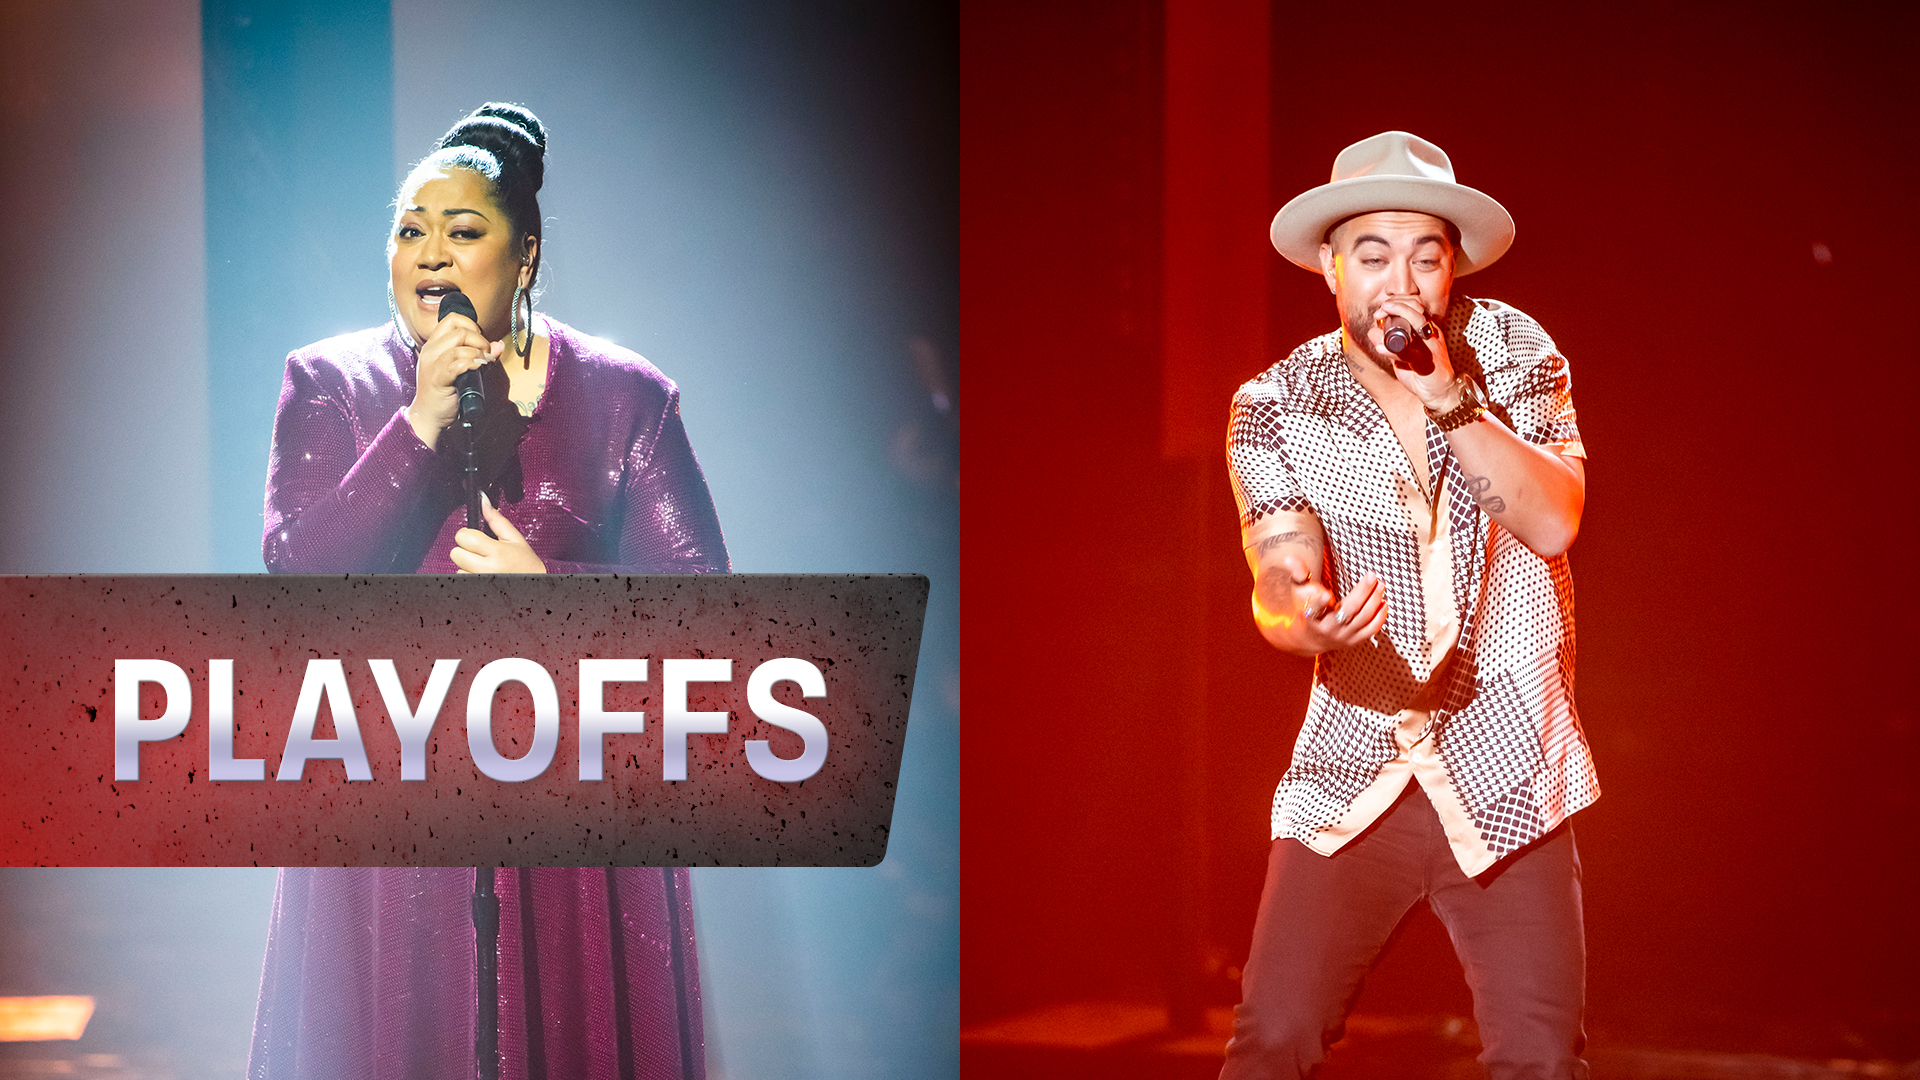 The Playoffs: Chris vs Lyric